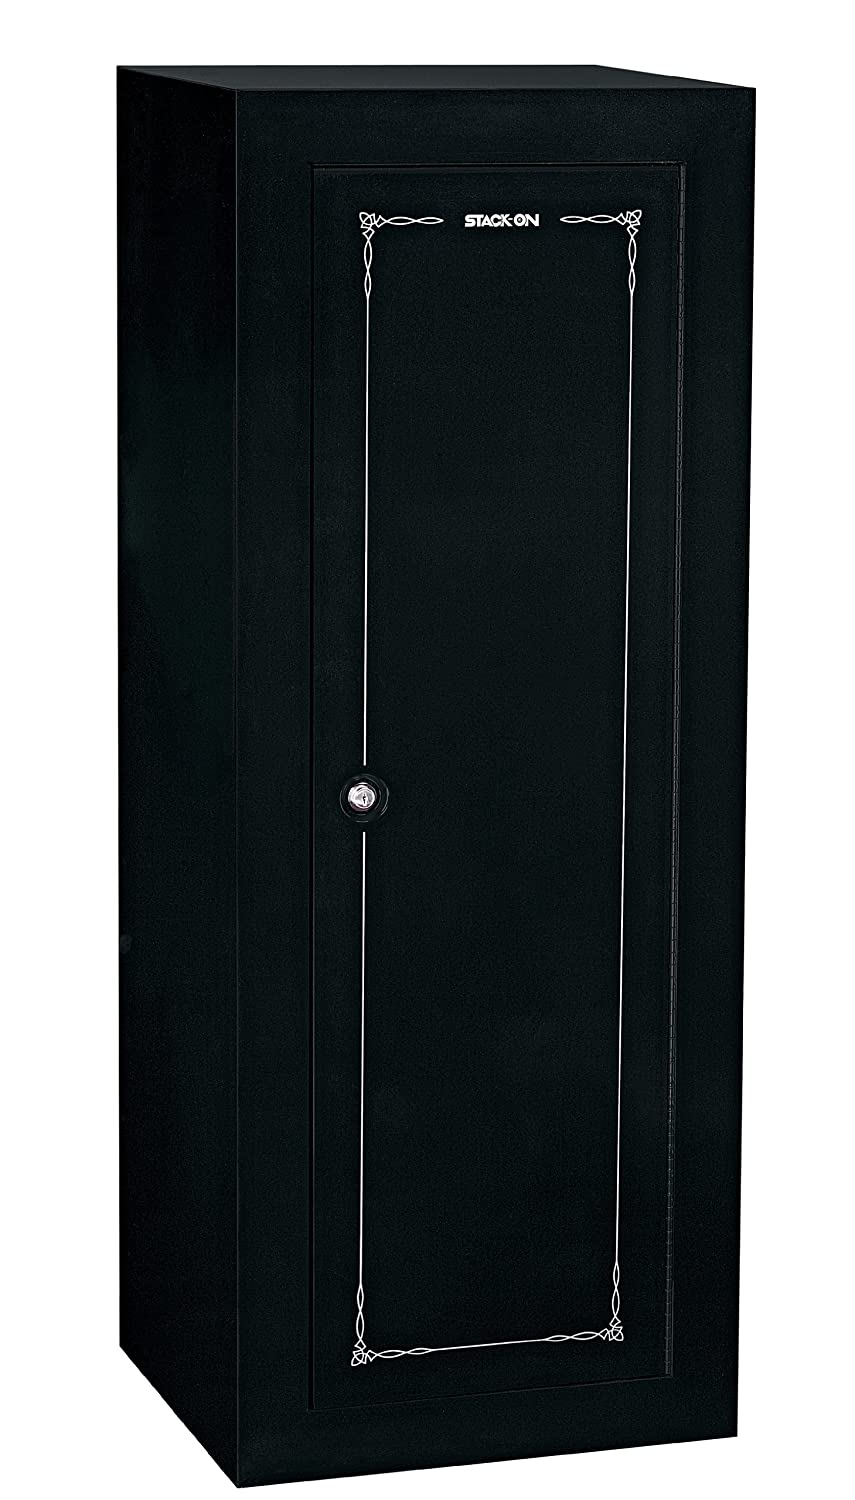 Stack-On GCB-18C Steel 18-Gun Convertible Steel Security Cabinet, Black